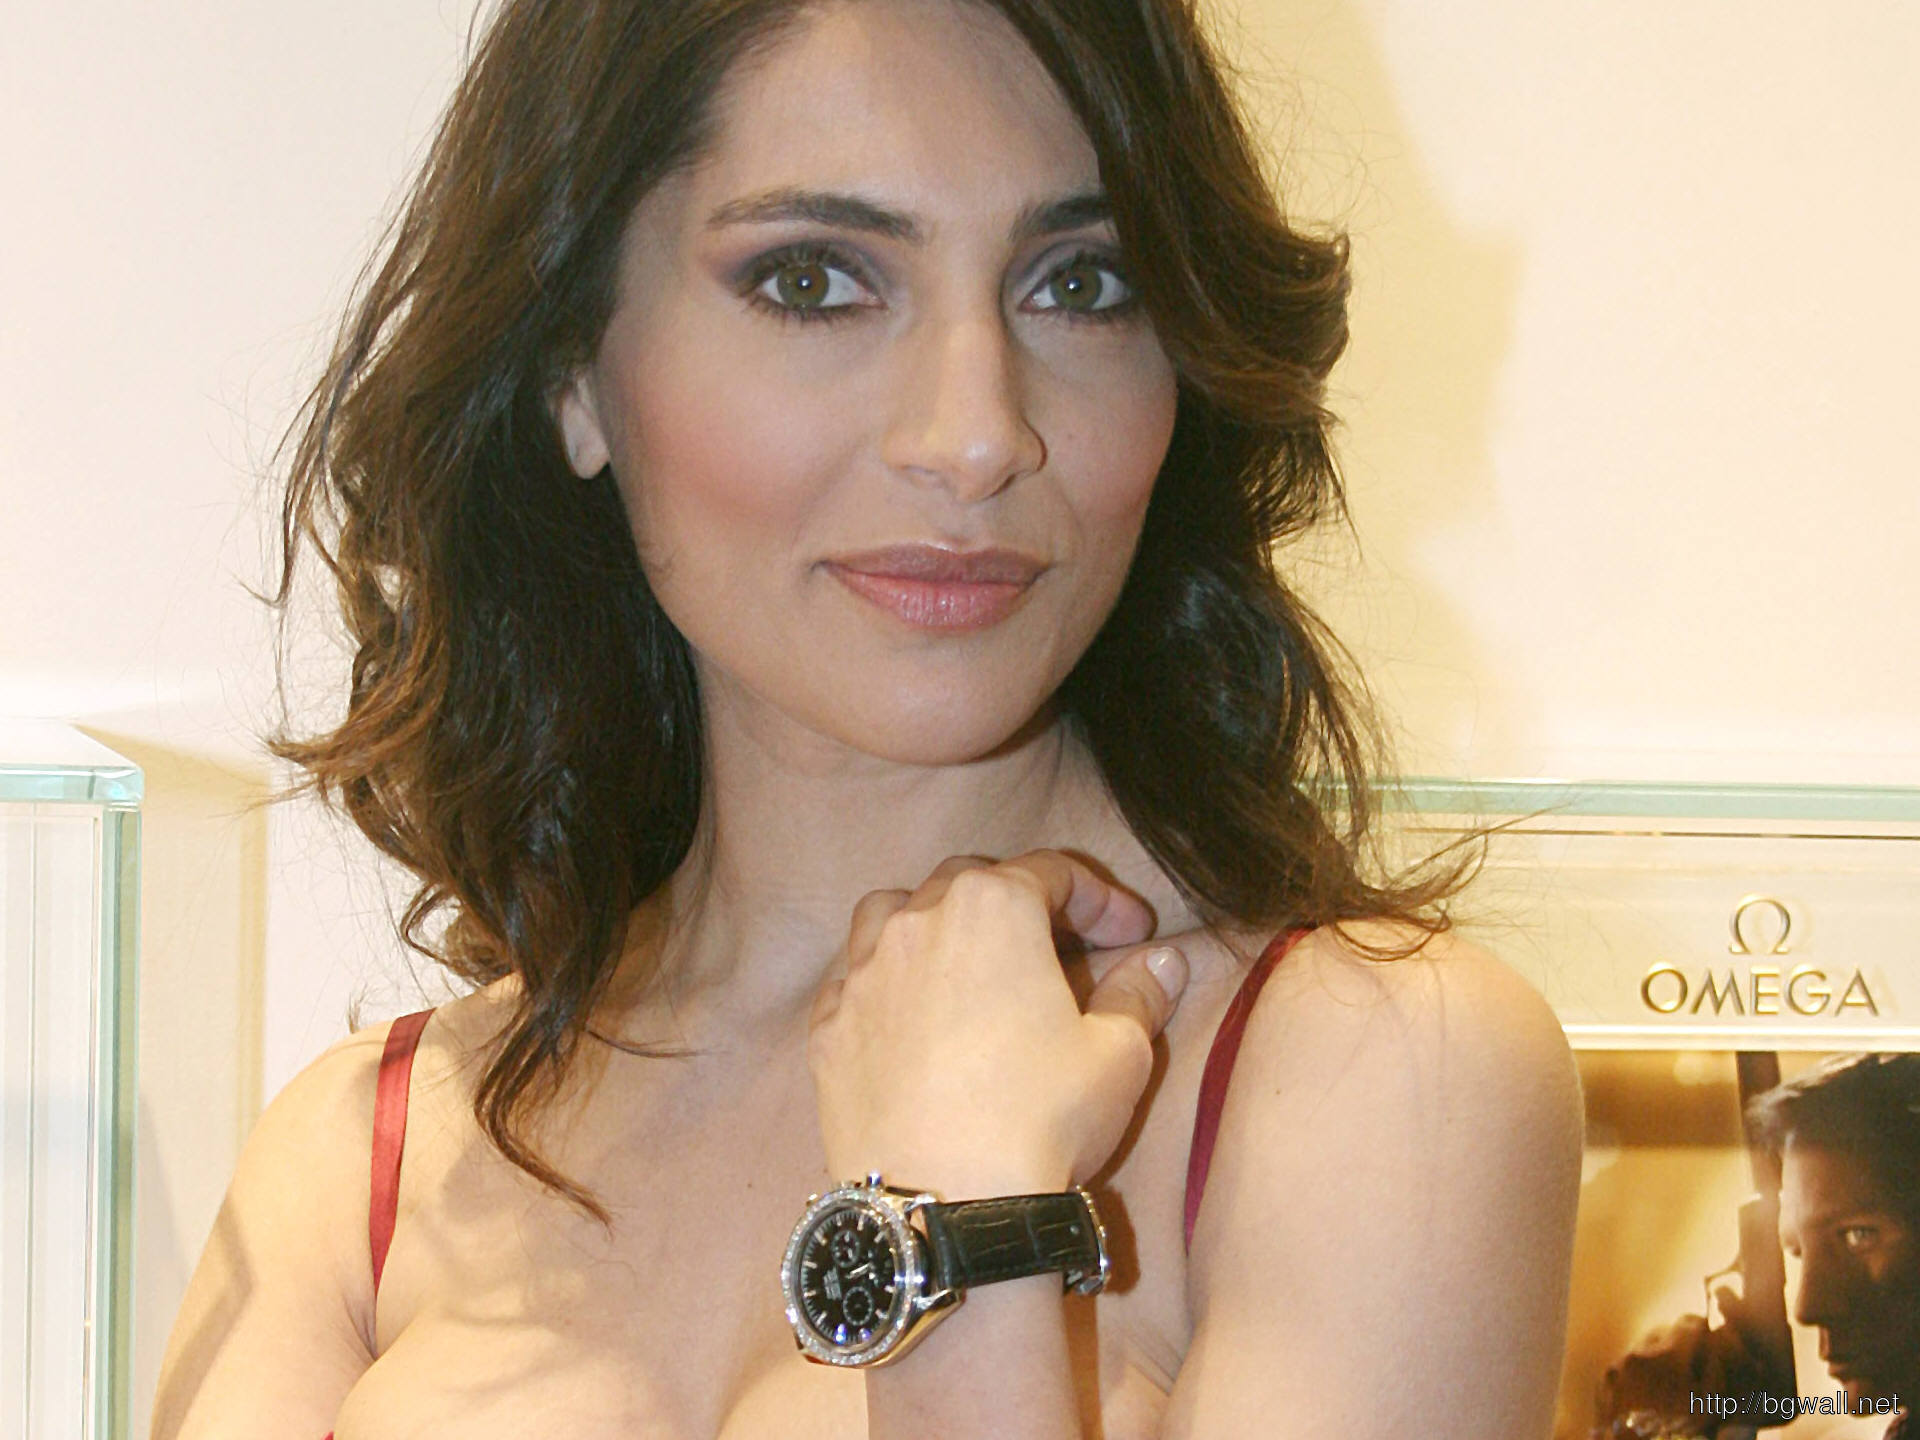 Caterina Murino Picture – Background Wallpaper HD